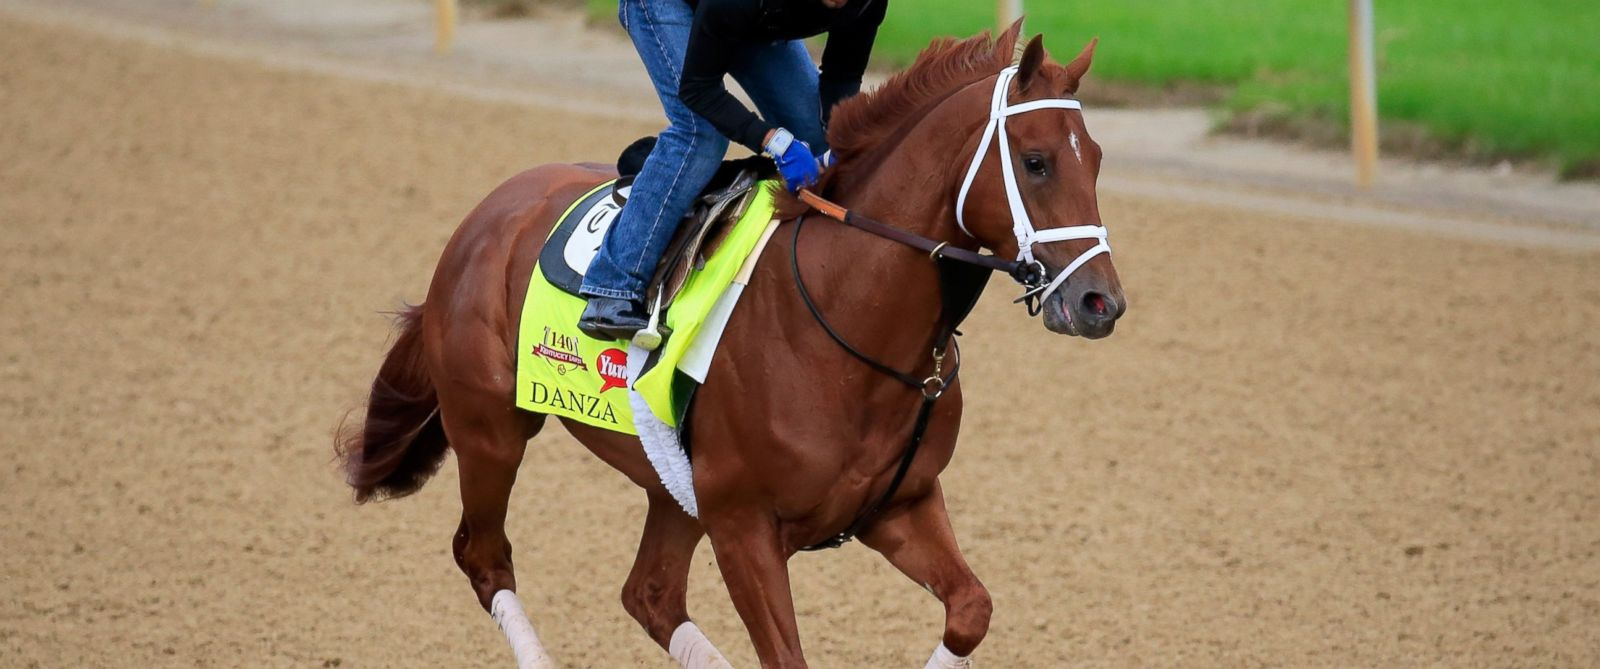 PHOTO: Danza ridden by Ezequiel Perez goes over the track during the morning exercise session in preparation for the 140th Kentucky Derby at Churchill Downs on April 30, 2014 in Louisville, Kentucky.